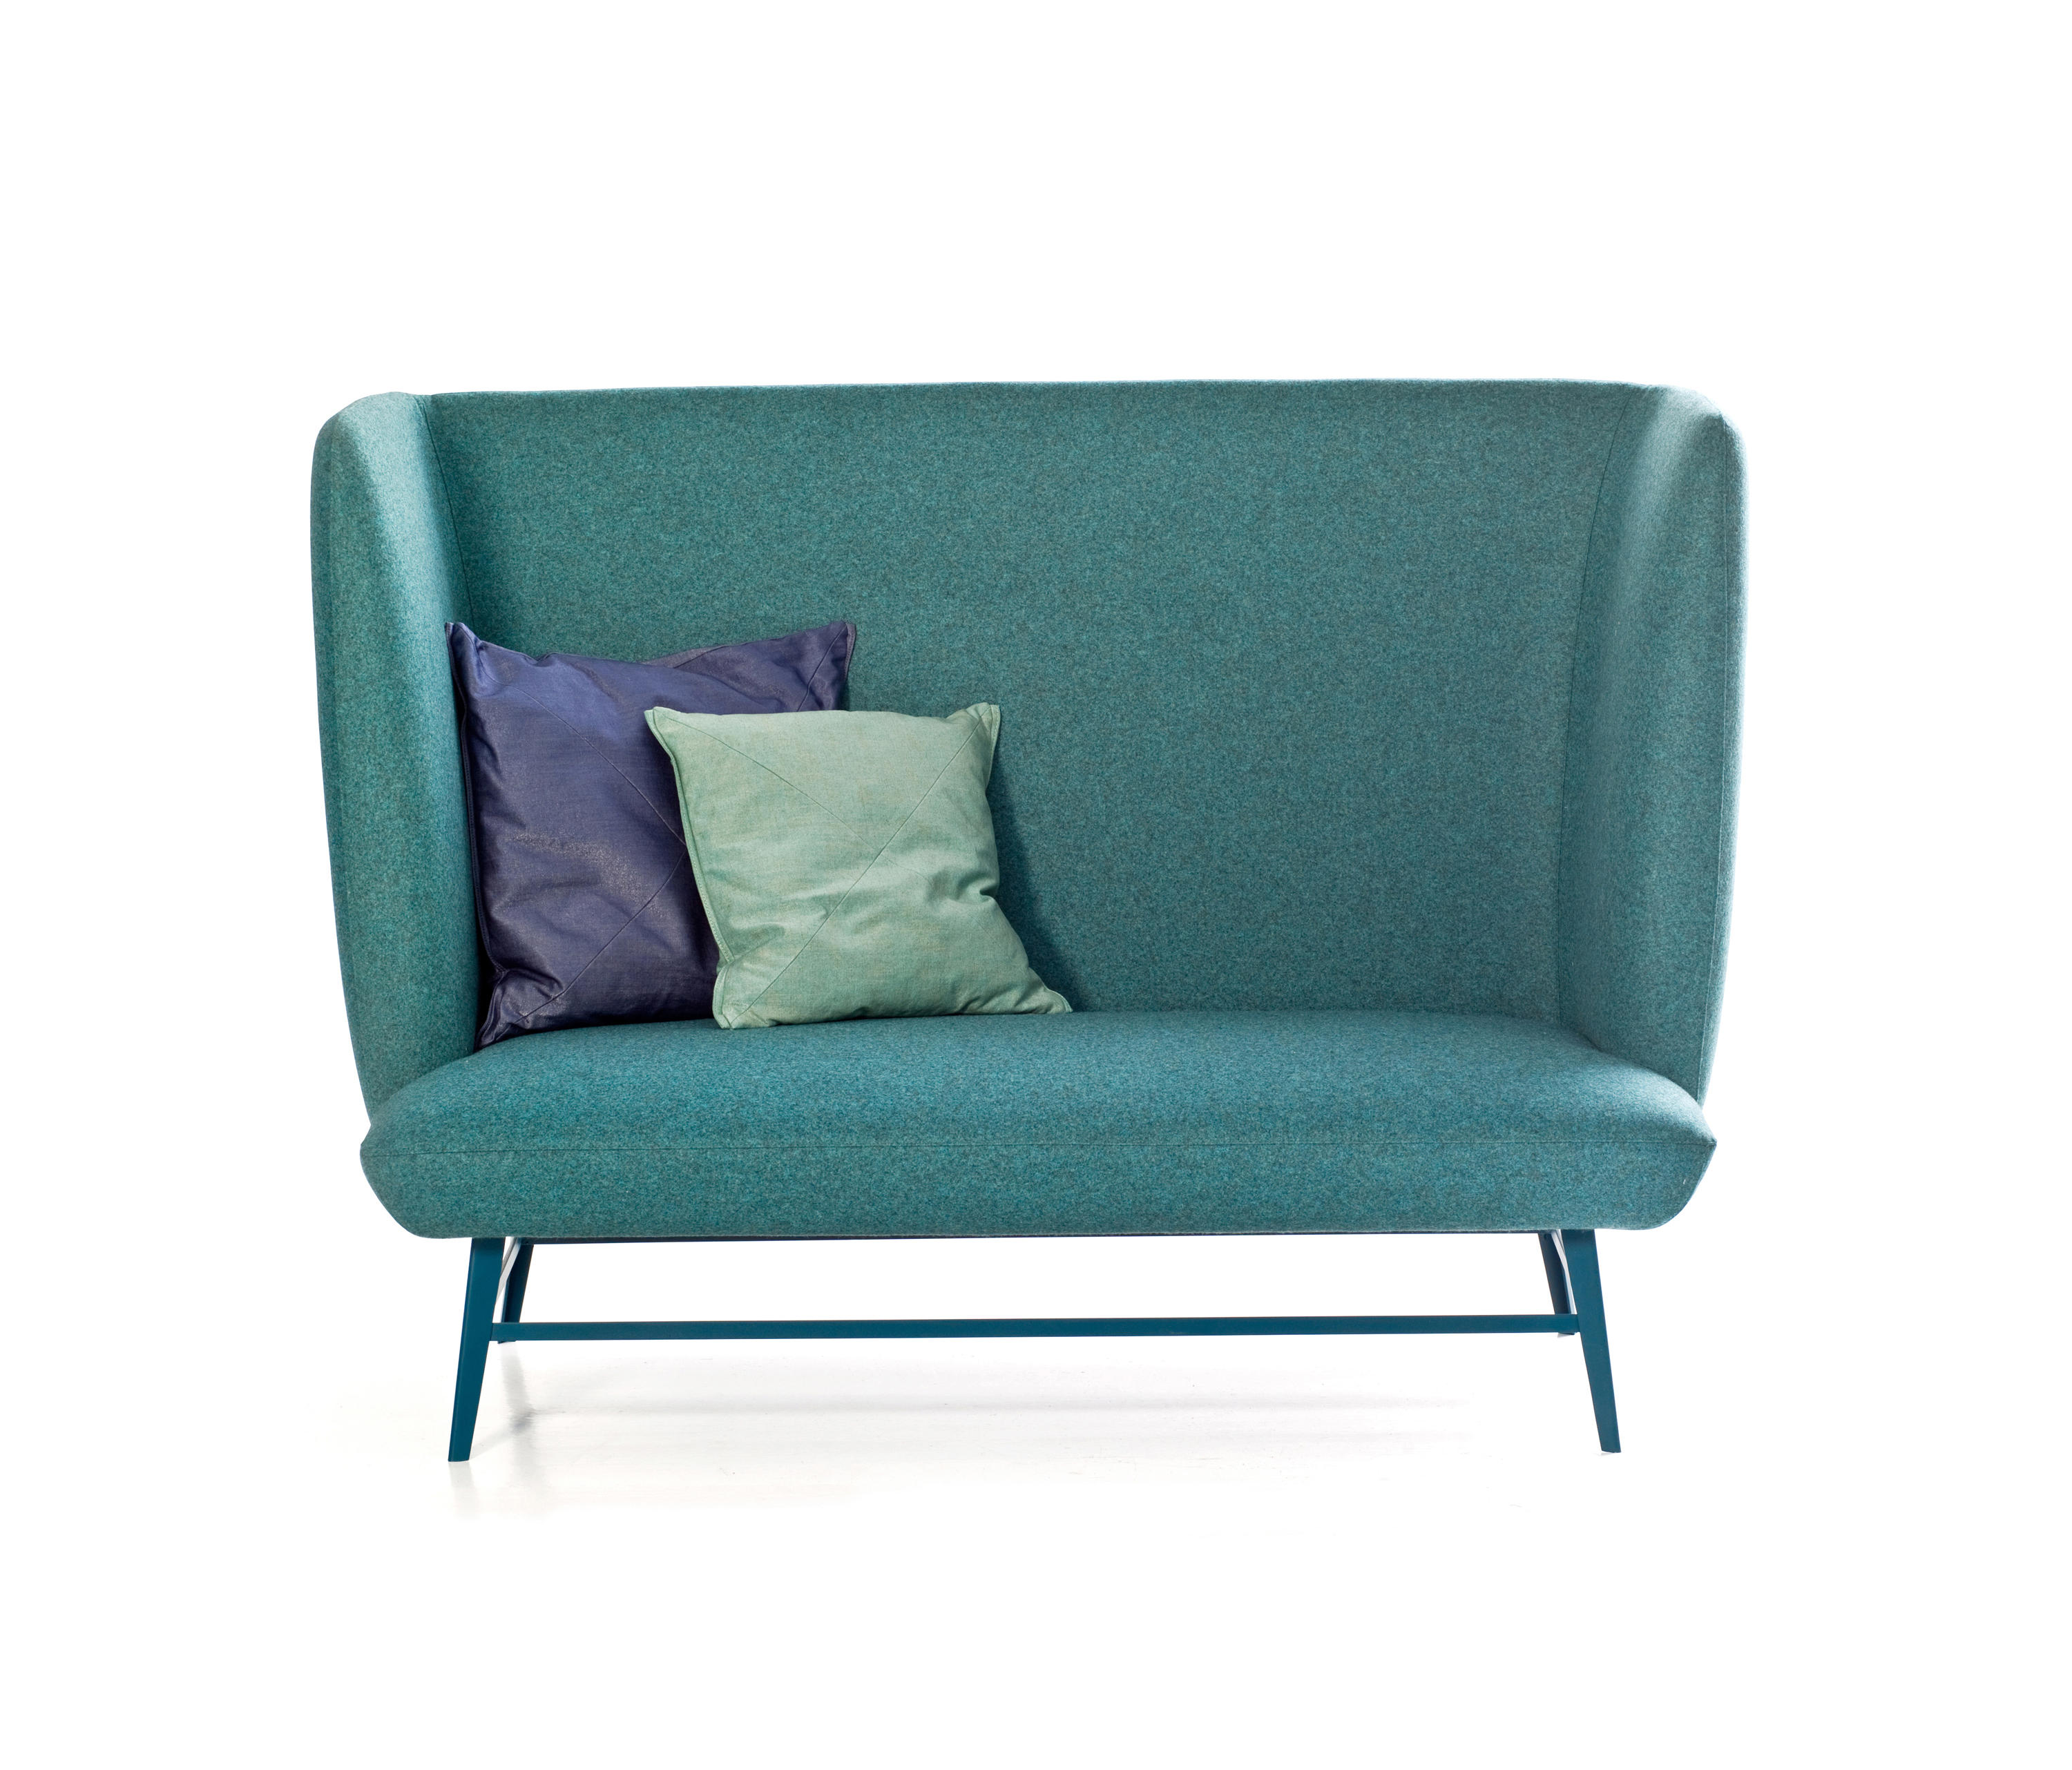 Gimme shelter sofas from diesel by moroso architonic - Divano diesel moroso ...